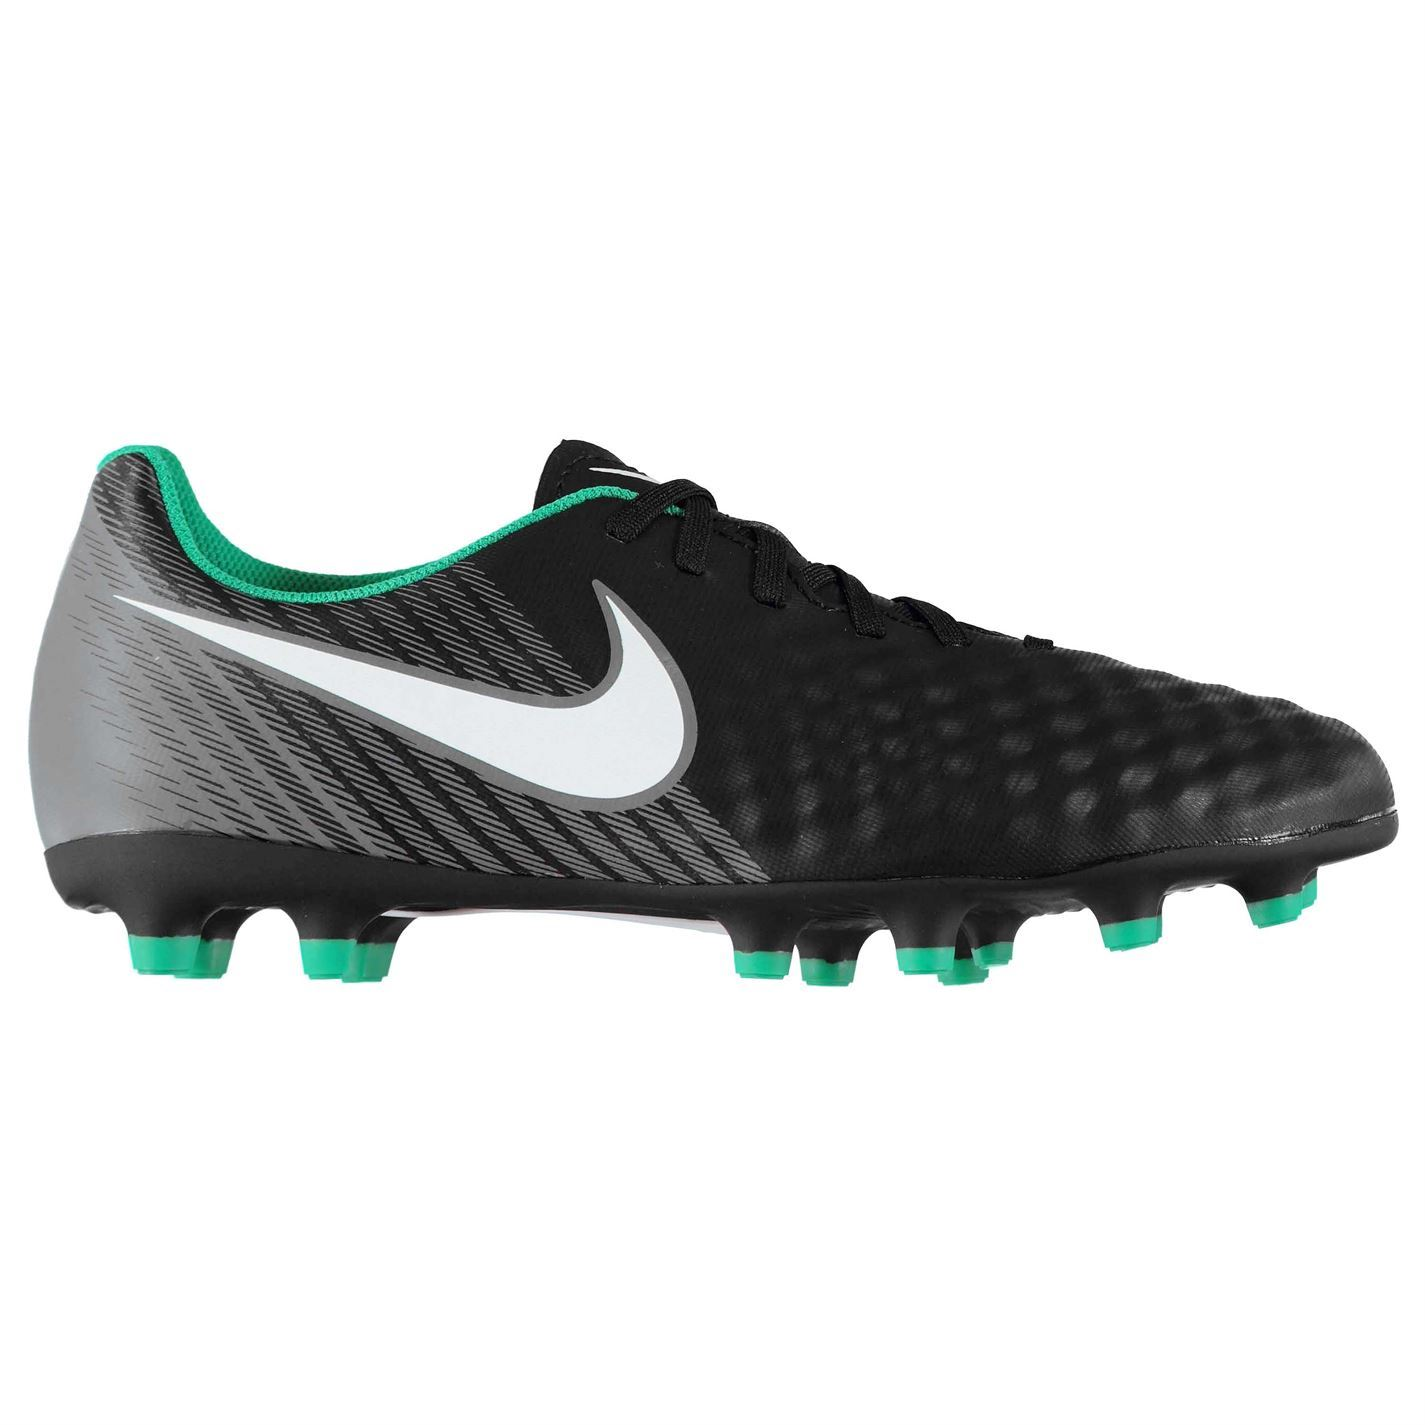 ... Nike Magista Ola FG Firm Ground Football Boots Mens Blk/Wht Soccer  Cleats Shoes ...